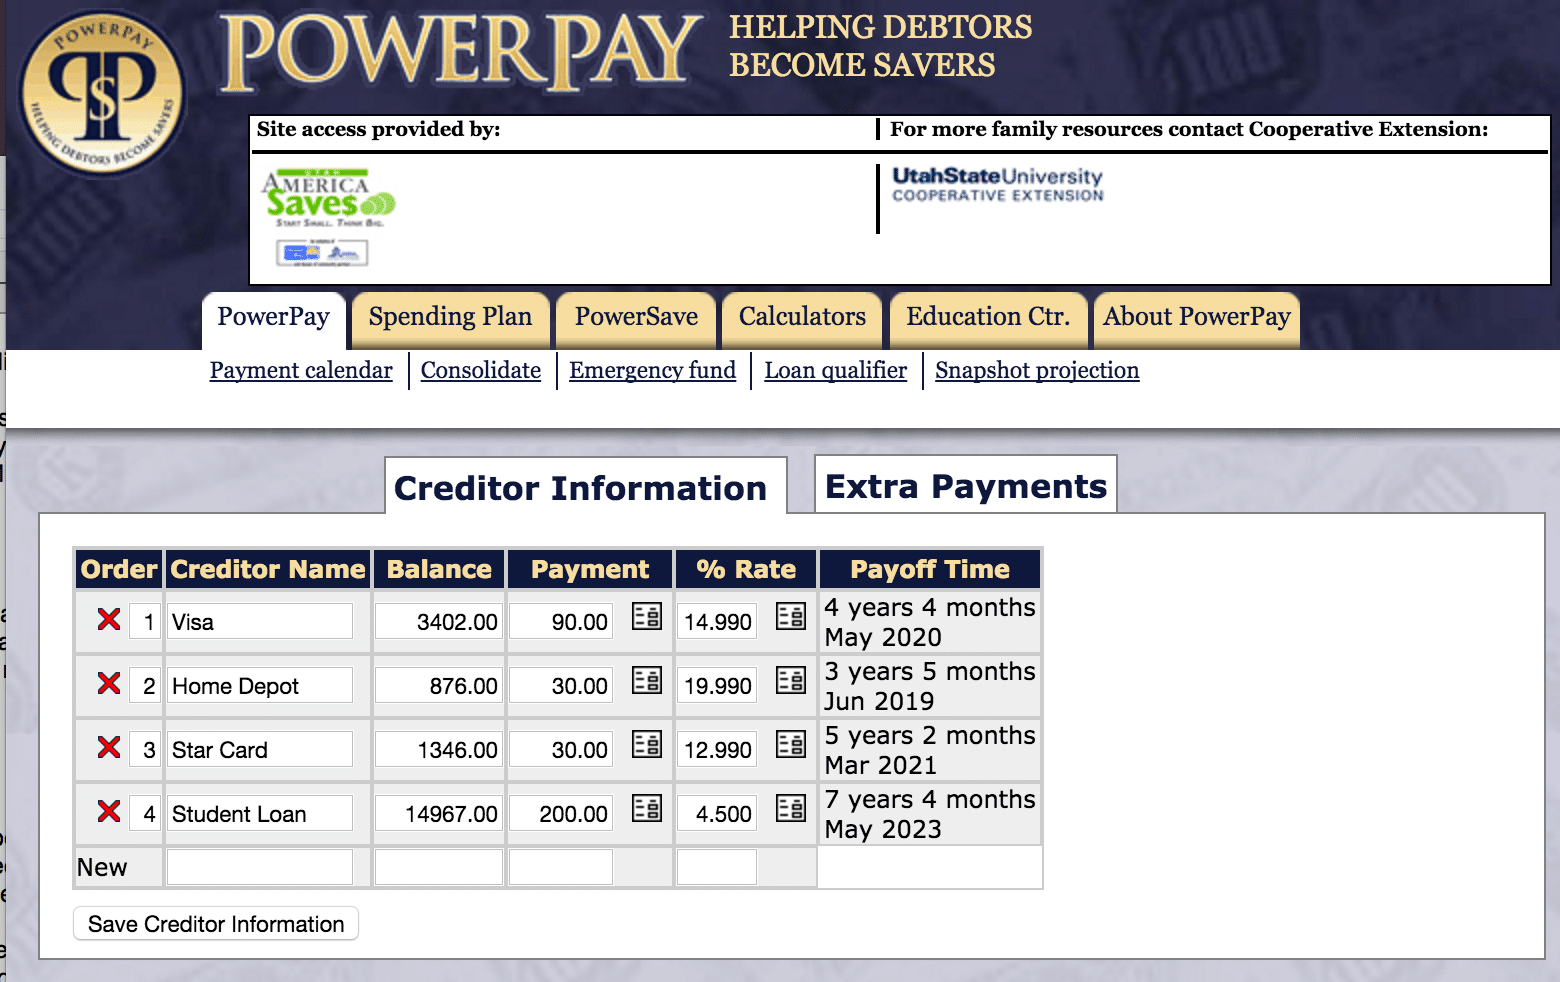 Power Pay Debt Creditor Information